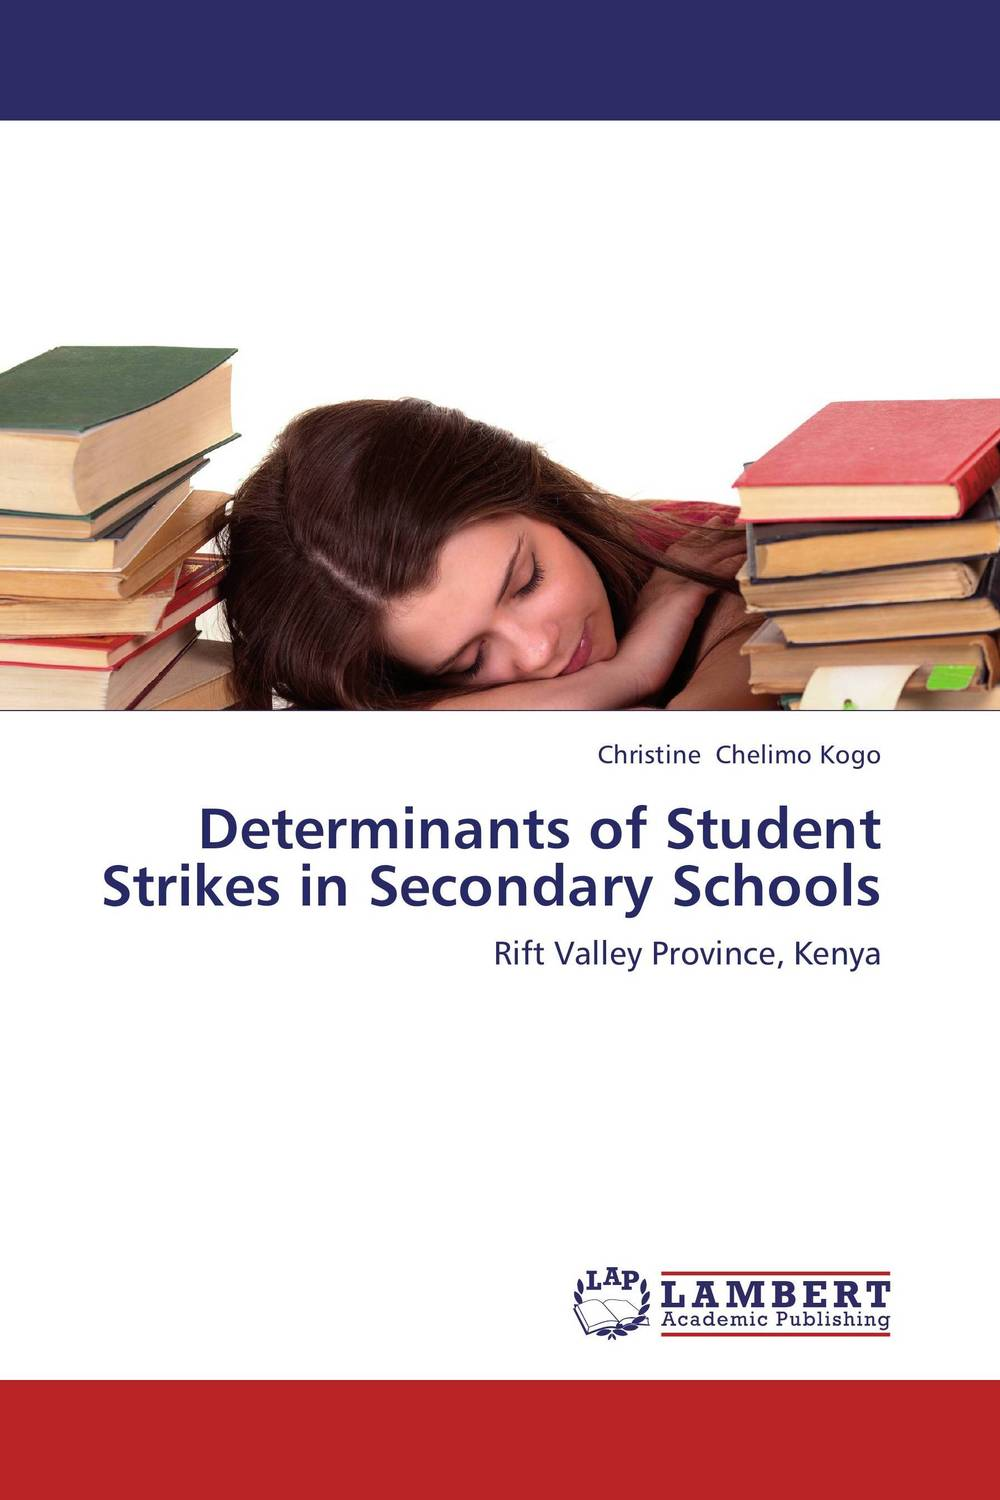 Determinants of Student Strikes in Secondary Schools administrative challenges facing public secondary schools